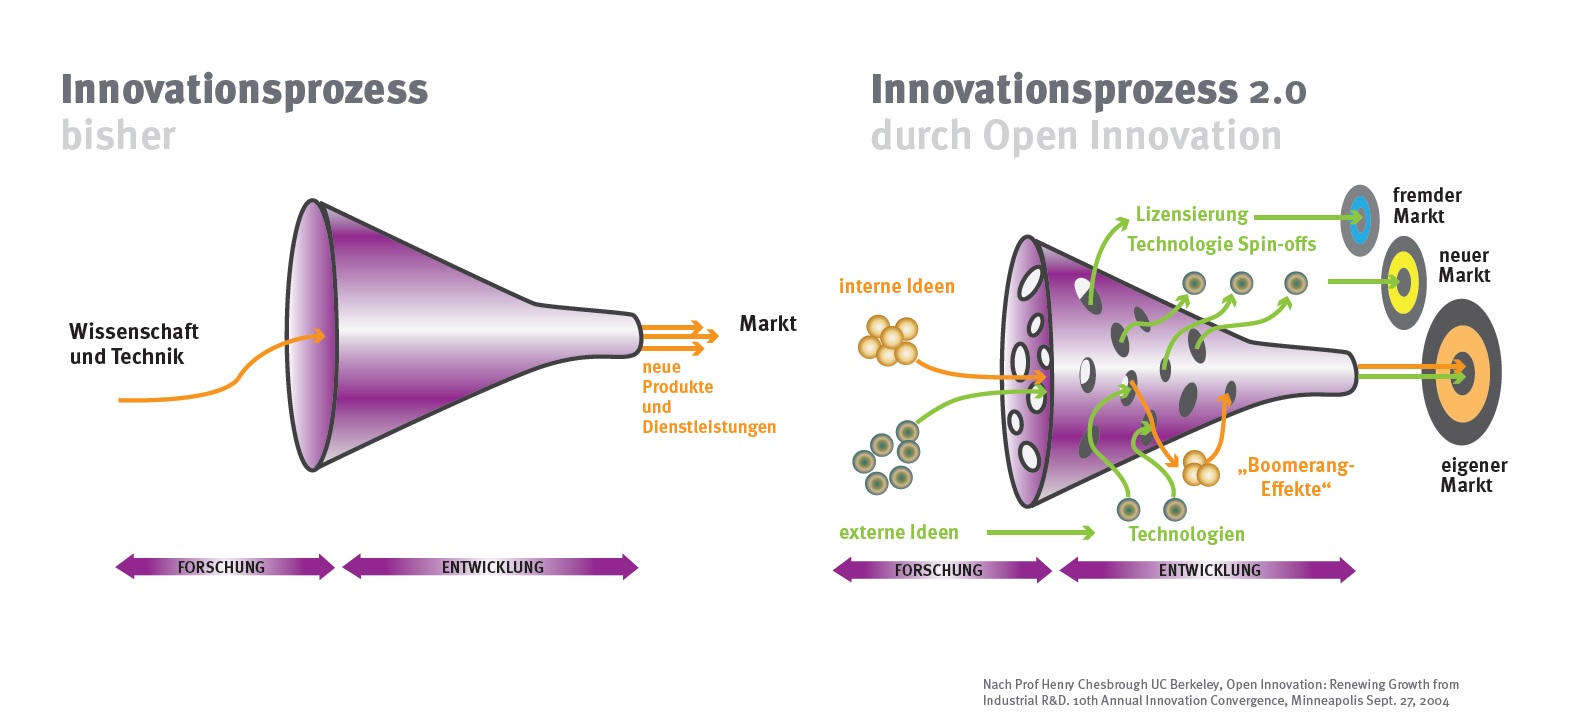 pr_Open_Innovation_Innovationsprozess_Funnel_r